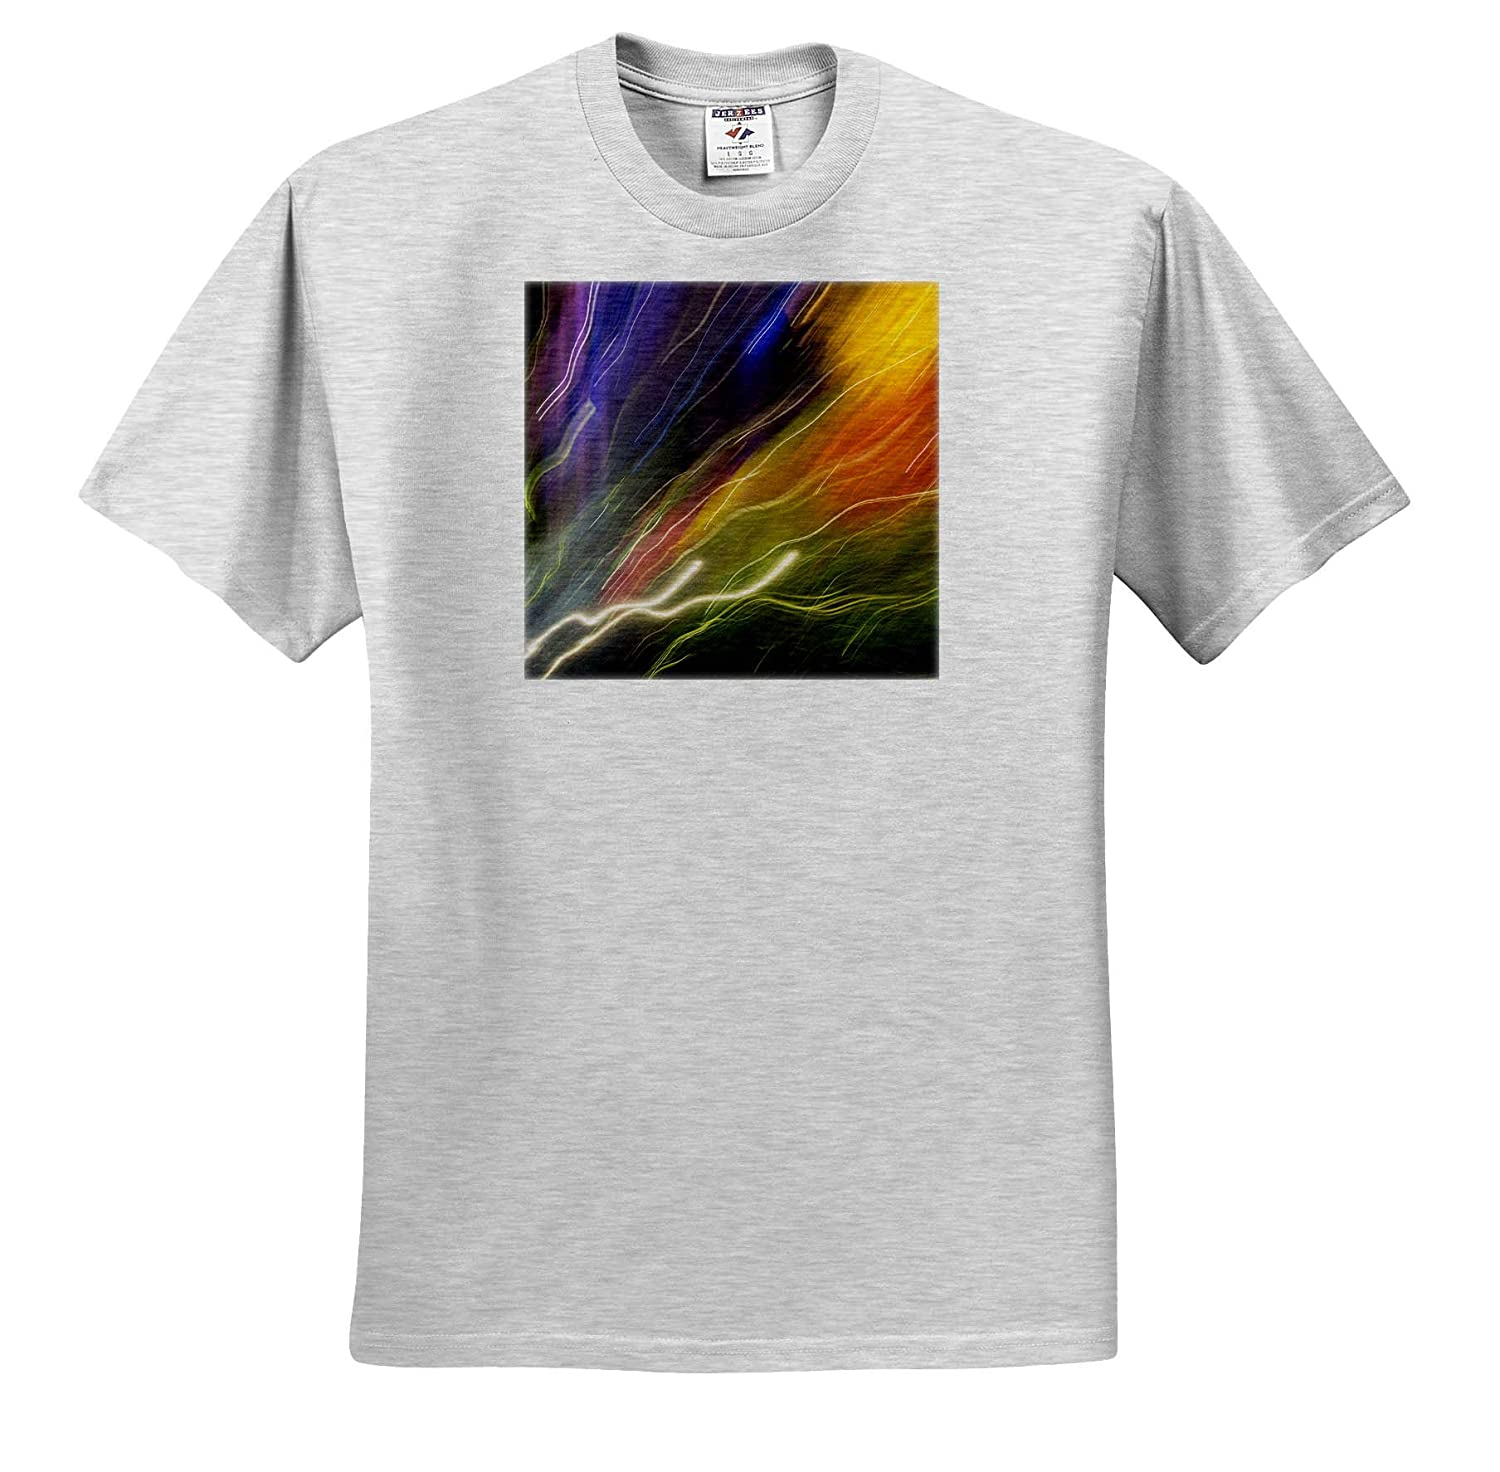 ts/_315184 Abstracts Colorful Glass with Motion Blur Effect 3dRose Danita Delimont - Adult T-Shirt XL